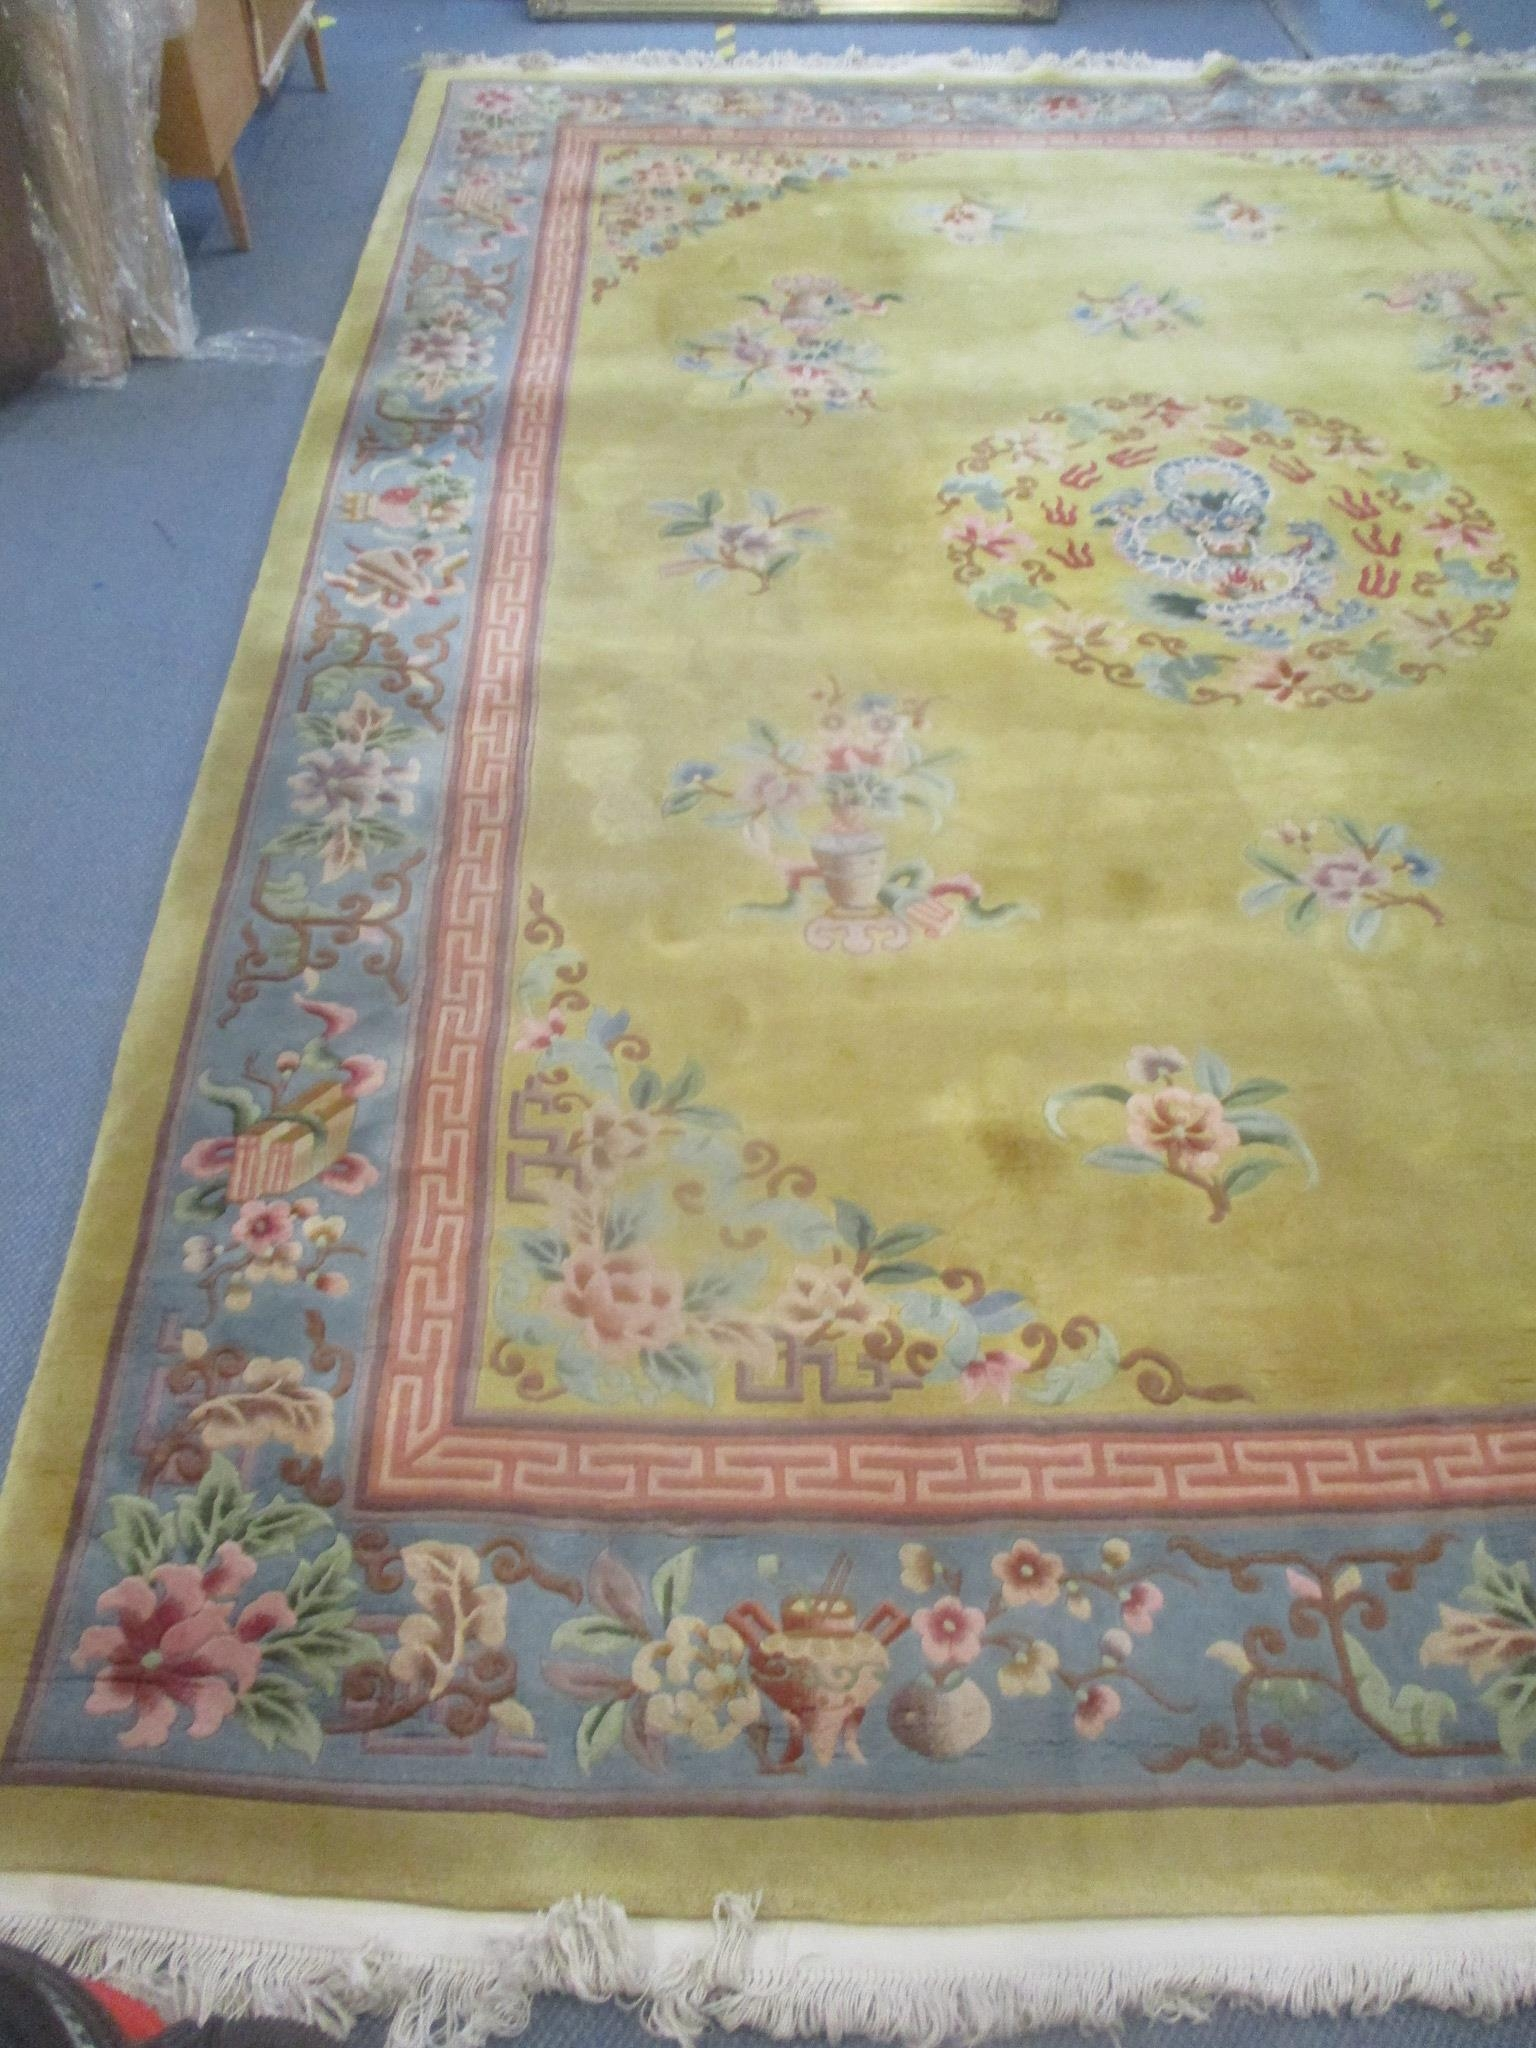 A good quality Chinese rug, bought at Harrods, traditional pattern, central dragon, floral motets - Image 2 of 5